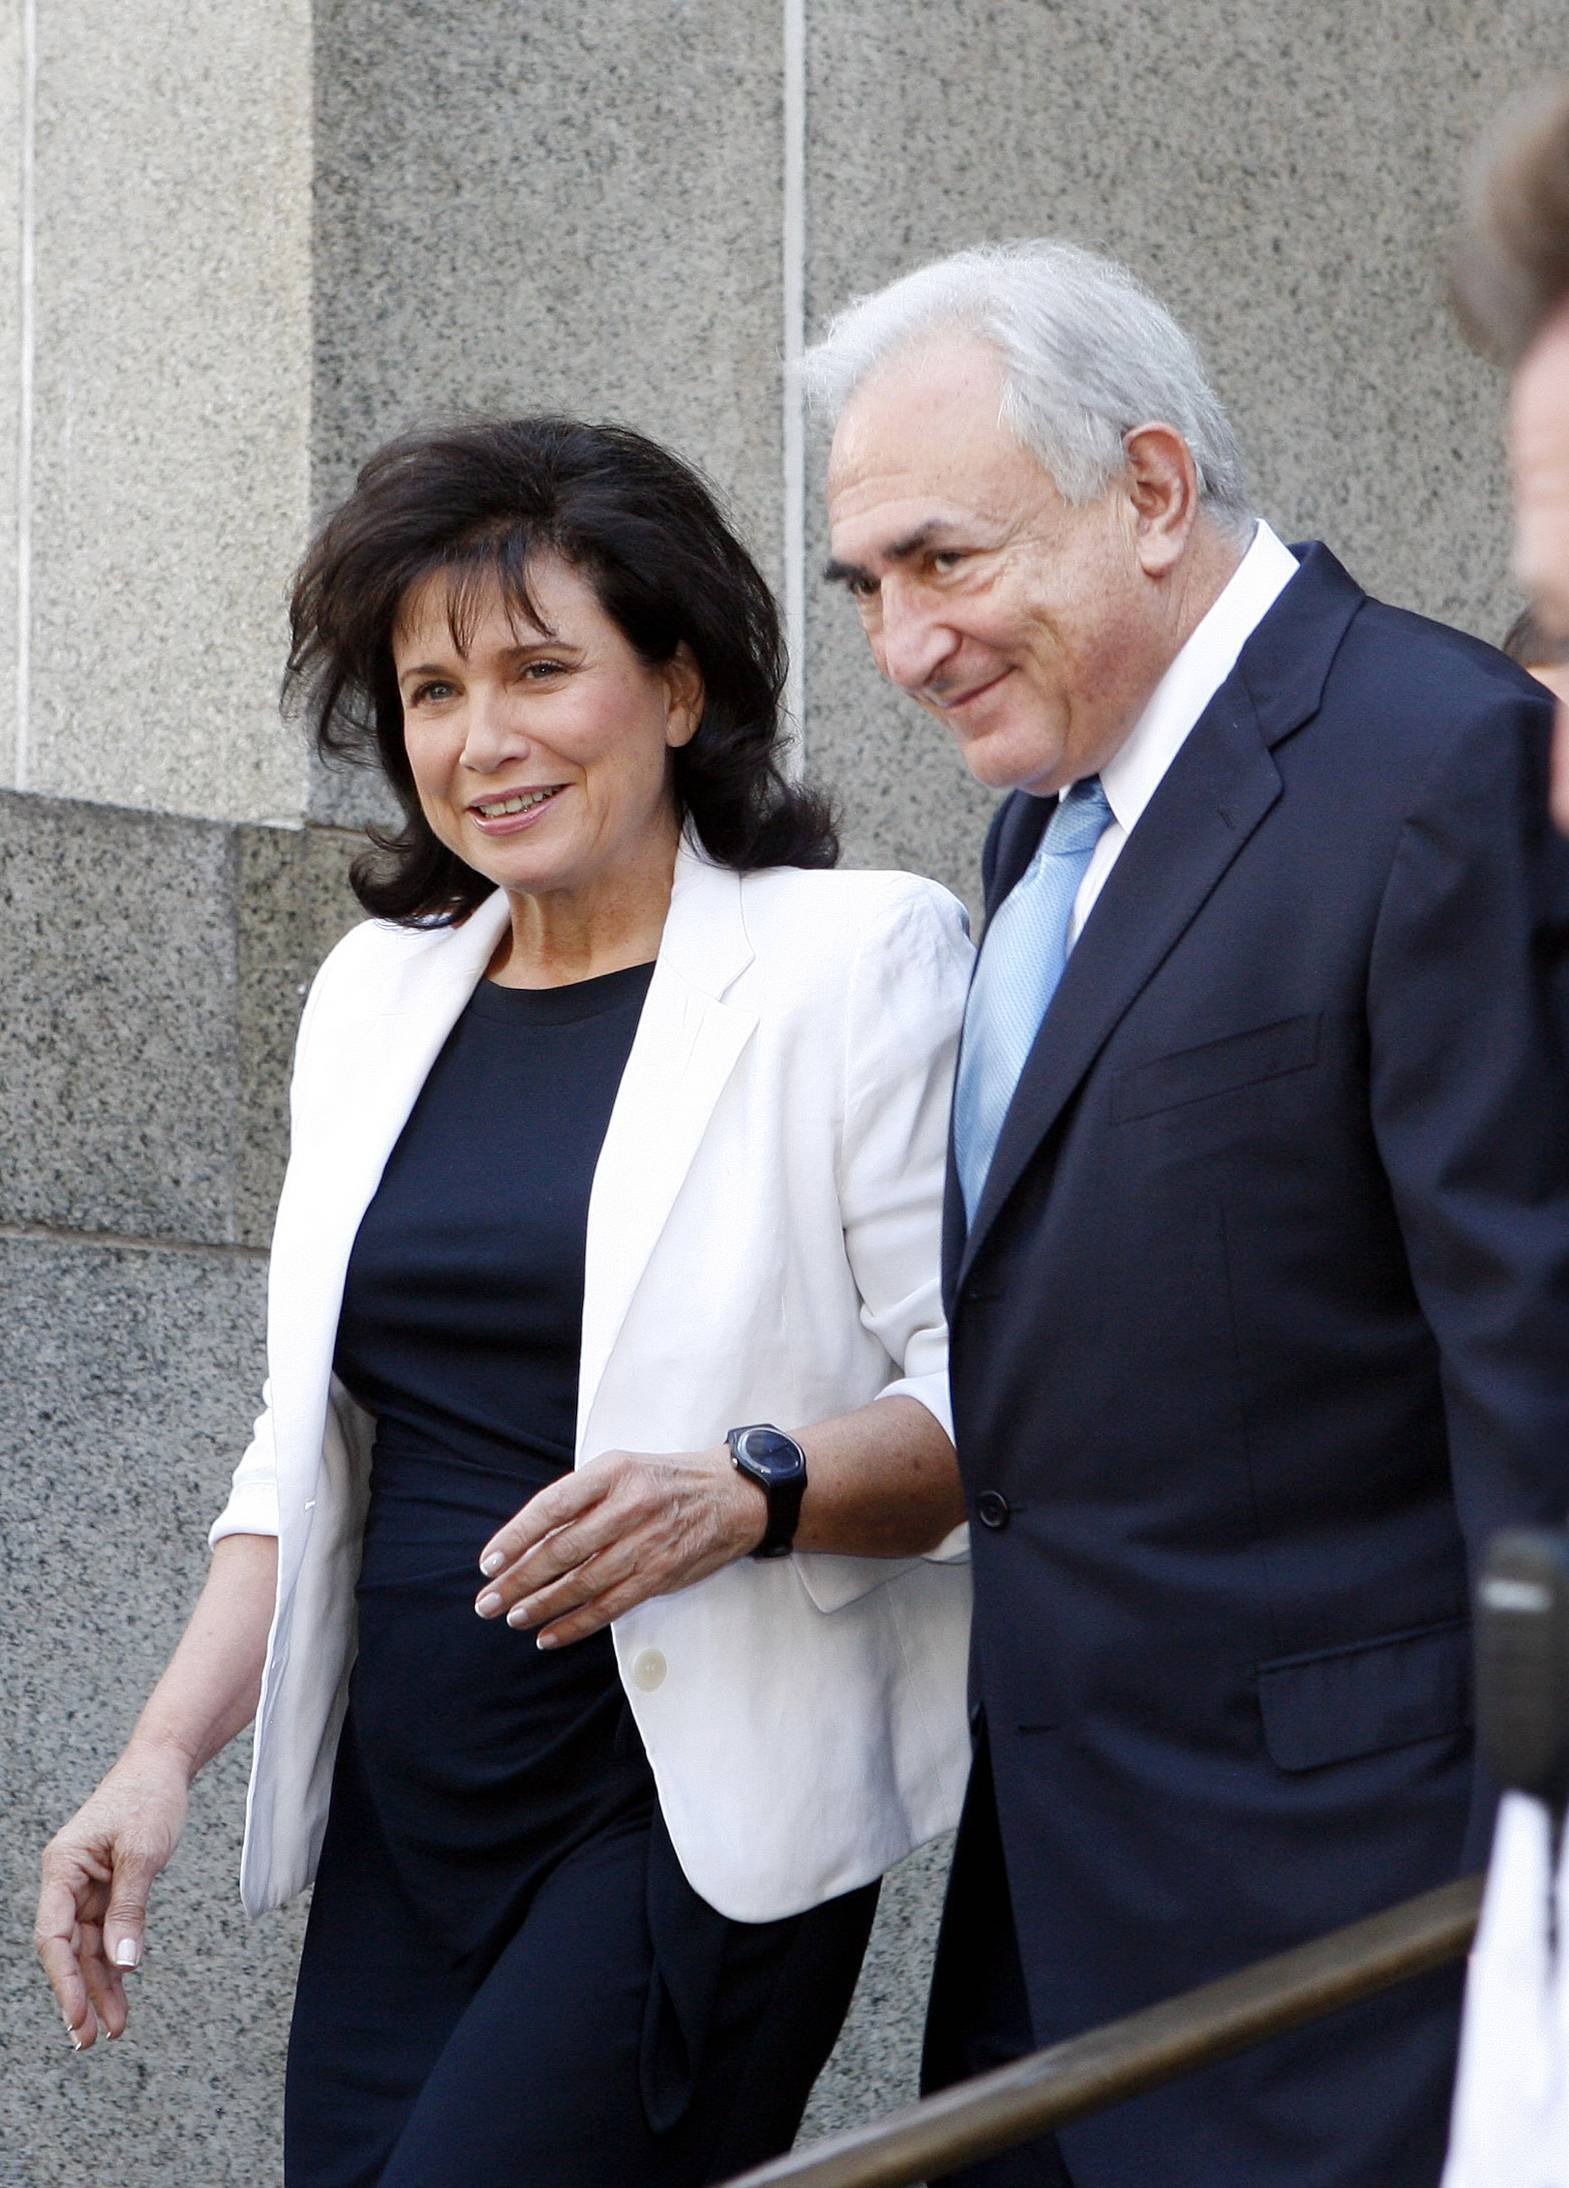 Dominique Strauss- Kahn leaves New York State Supreme court with his wife Anne Sinclair, Friday, July 1, 2011, in New York. A judge has agreed to free former International Monetary Fund leader Strauss-Kahn without bail or home confinement in the sexual assault case against him. The criminal case against him stands.